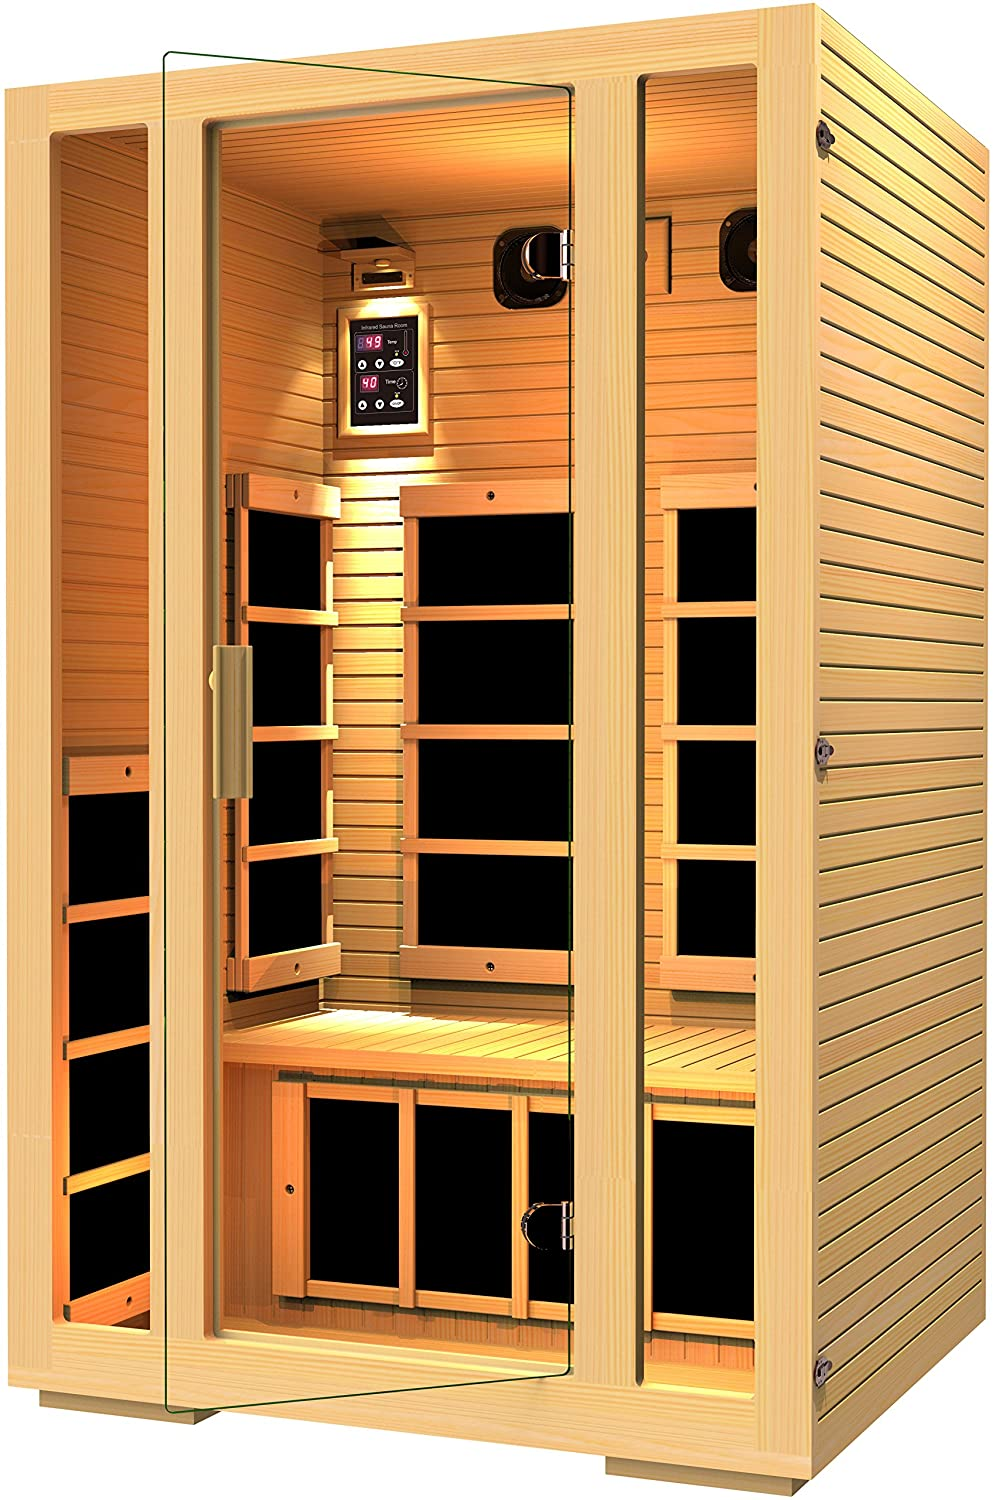 The wonders of an infrared sauna